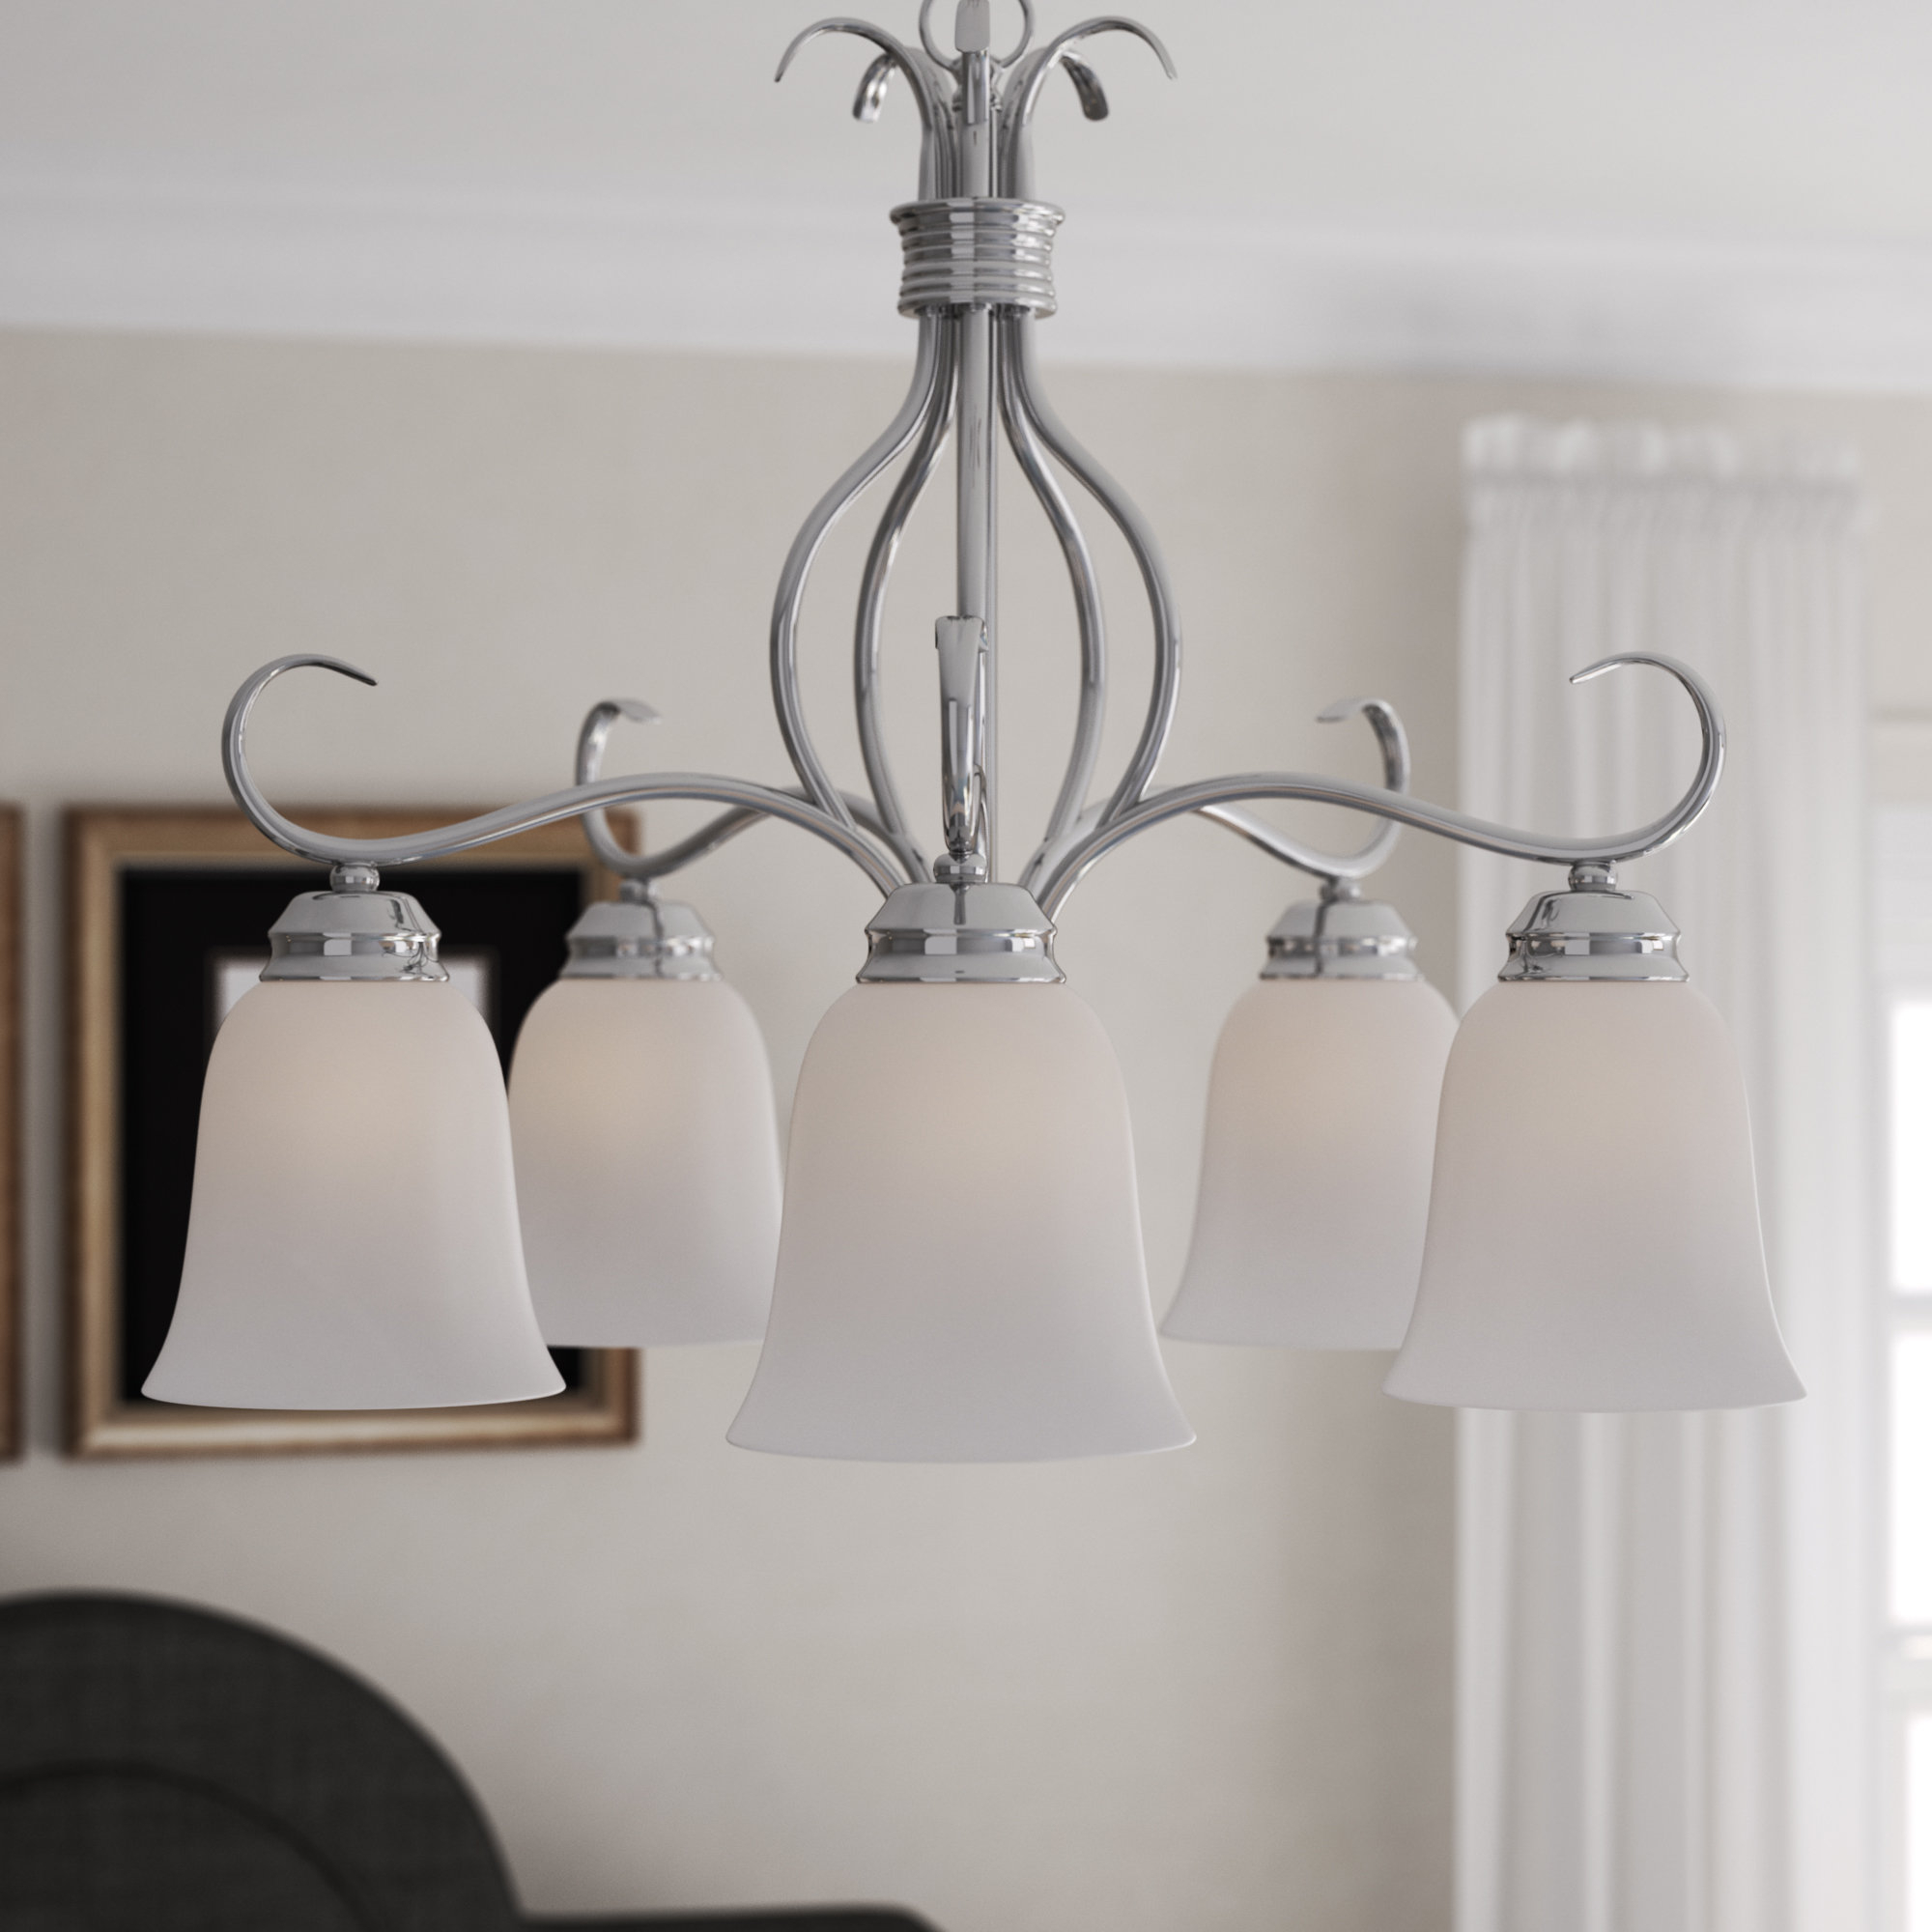 Newest Gaines 5 Light Shaded Chandeliers Pertaining To Wehr 5 Light Shaded Chandelier (Gallery 5 of 20)